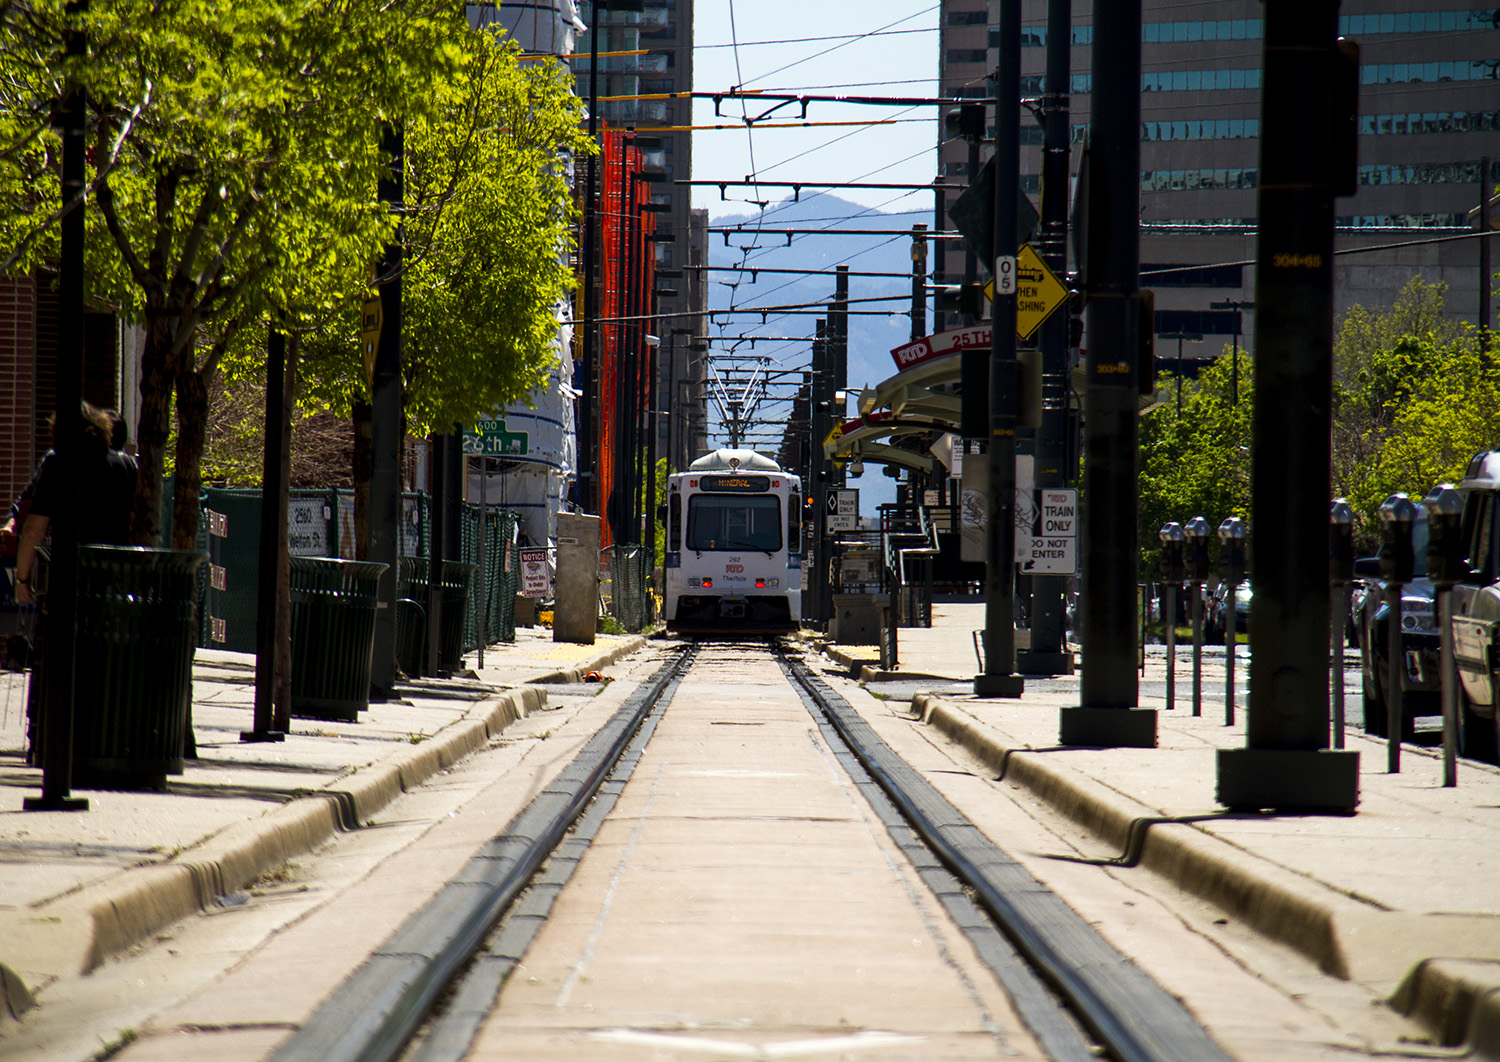 An RTD train parked at the end of the line in Five Points.